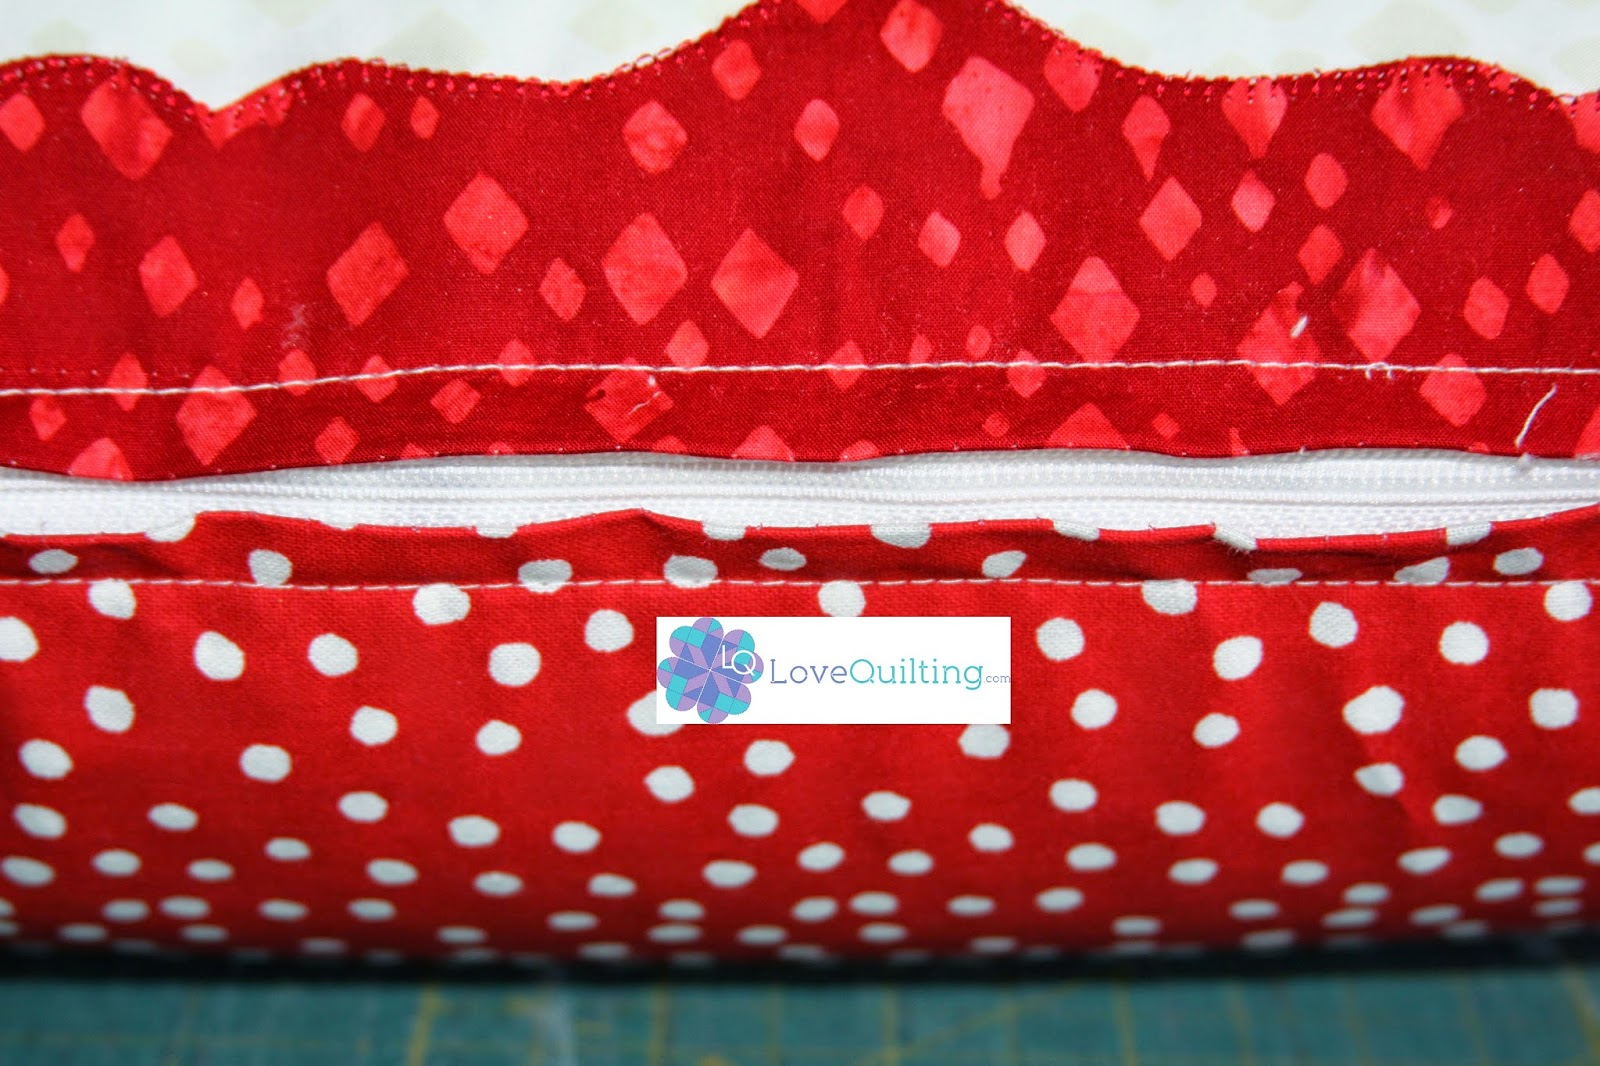 http://www.lovequilting.com/shop/free-lovequilting-com-exclusive/zipper-pillow/